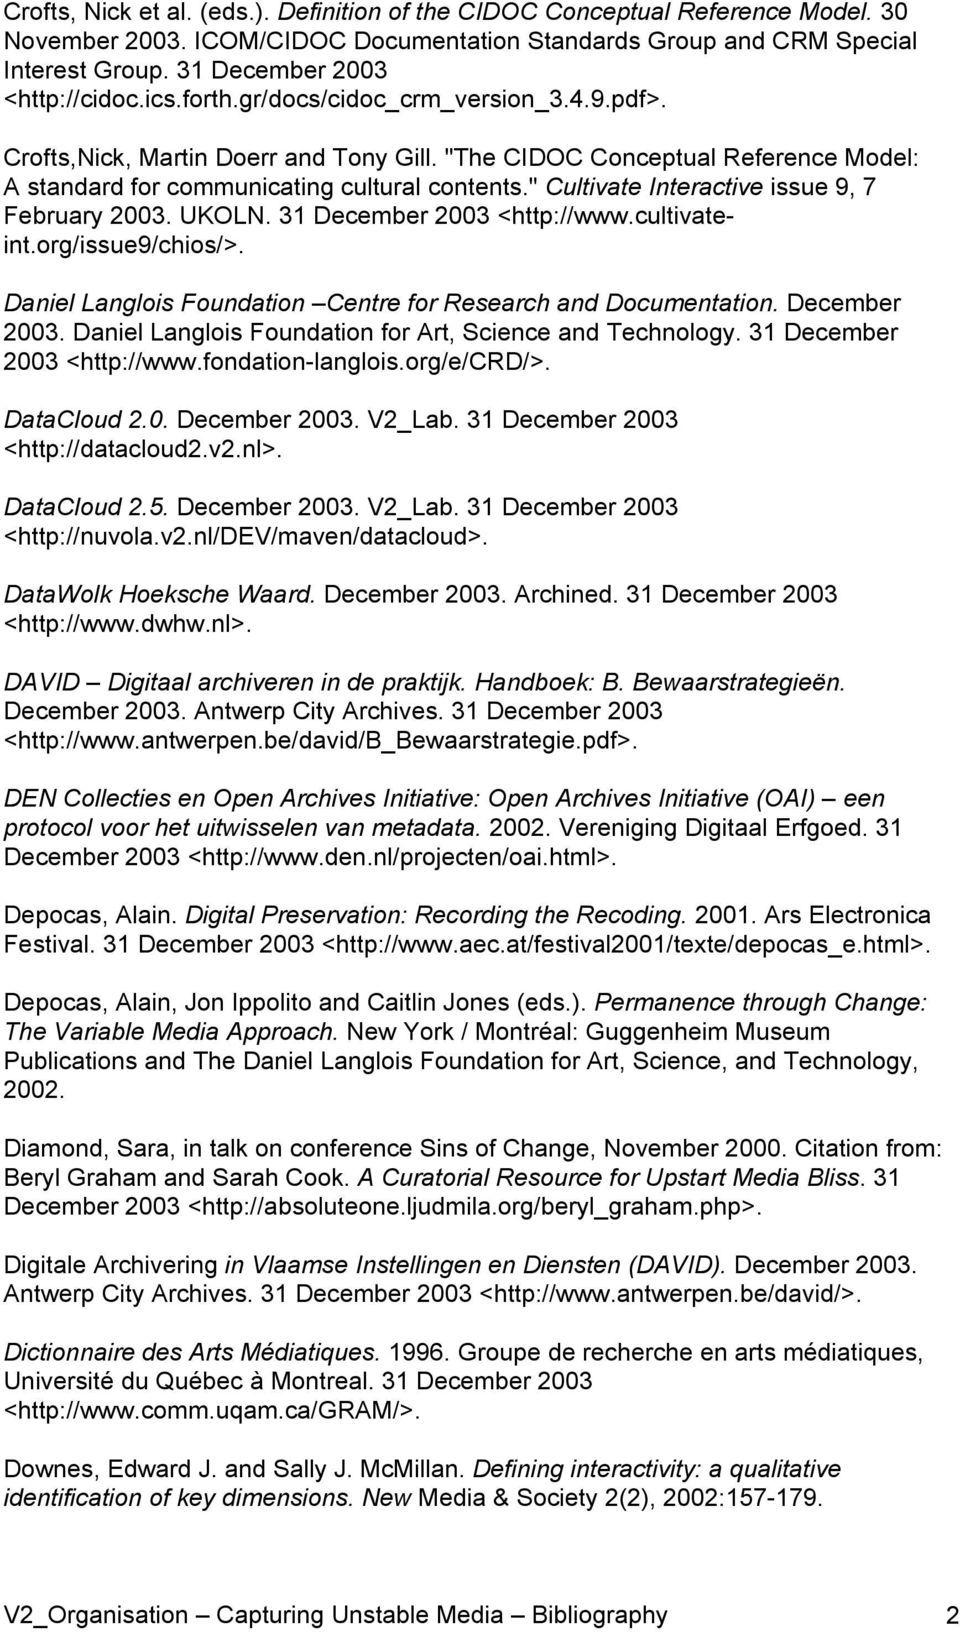 """The CIDOC Conceptual Reference Model: A standard for communicating cultural contents."" Cultivate Interactive issue 9, 7 February 2003. UKOLN. 31 December 2003 <http://www.cultivateint."